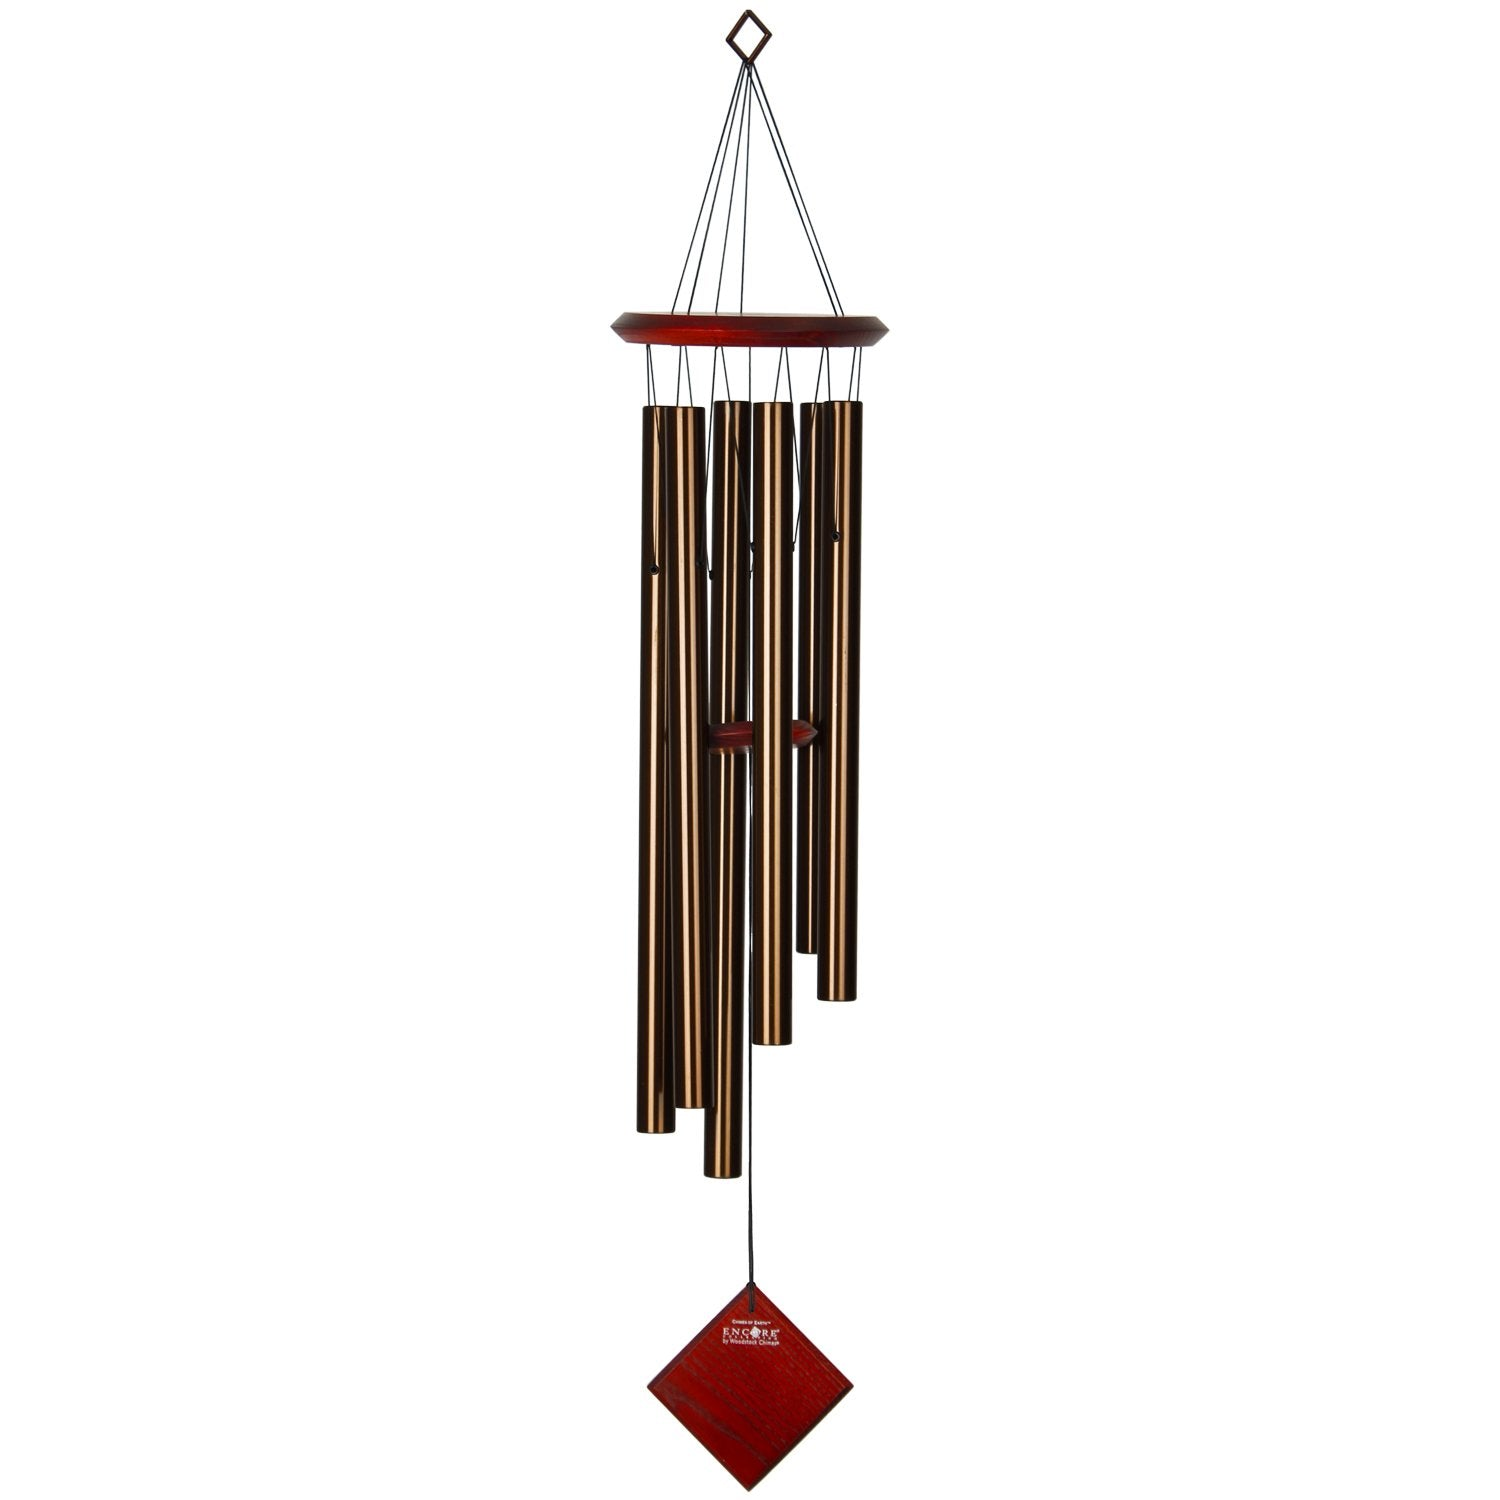 Encore Chimes of Earth - Bronze full product image